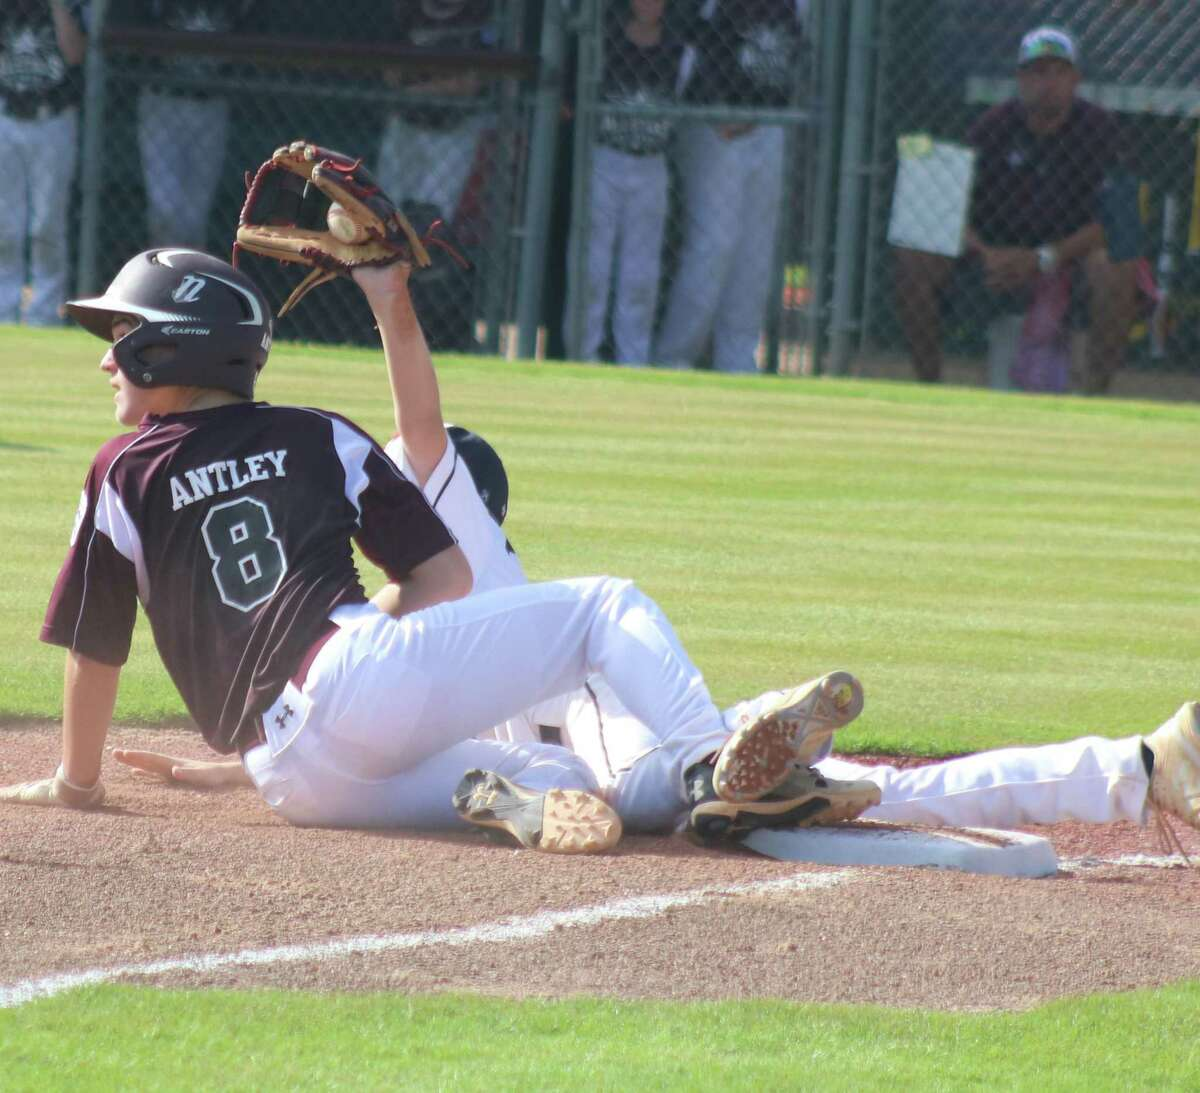 Post Oak's third baseman shows the umpire the ball that led to League City National runner Teague Antley getting called out. Antley was attempting to advance on a pitch in the dirt that didn't roll far from the plate.